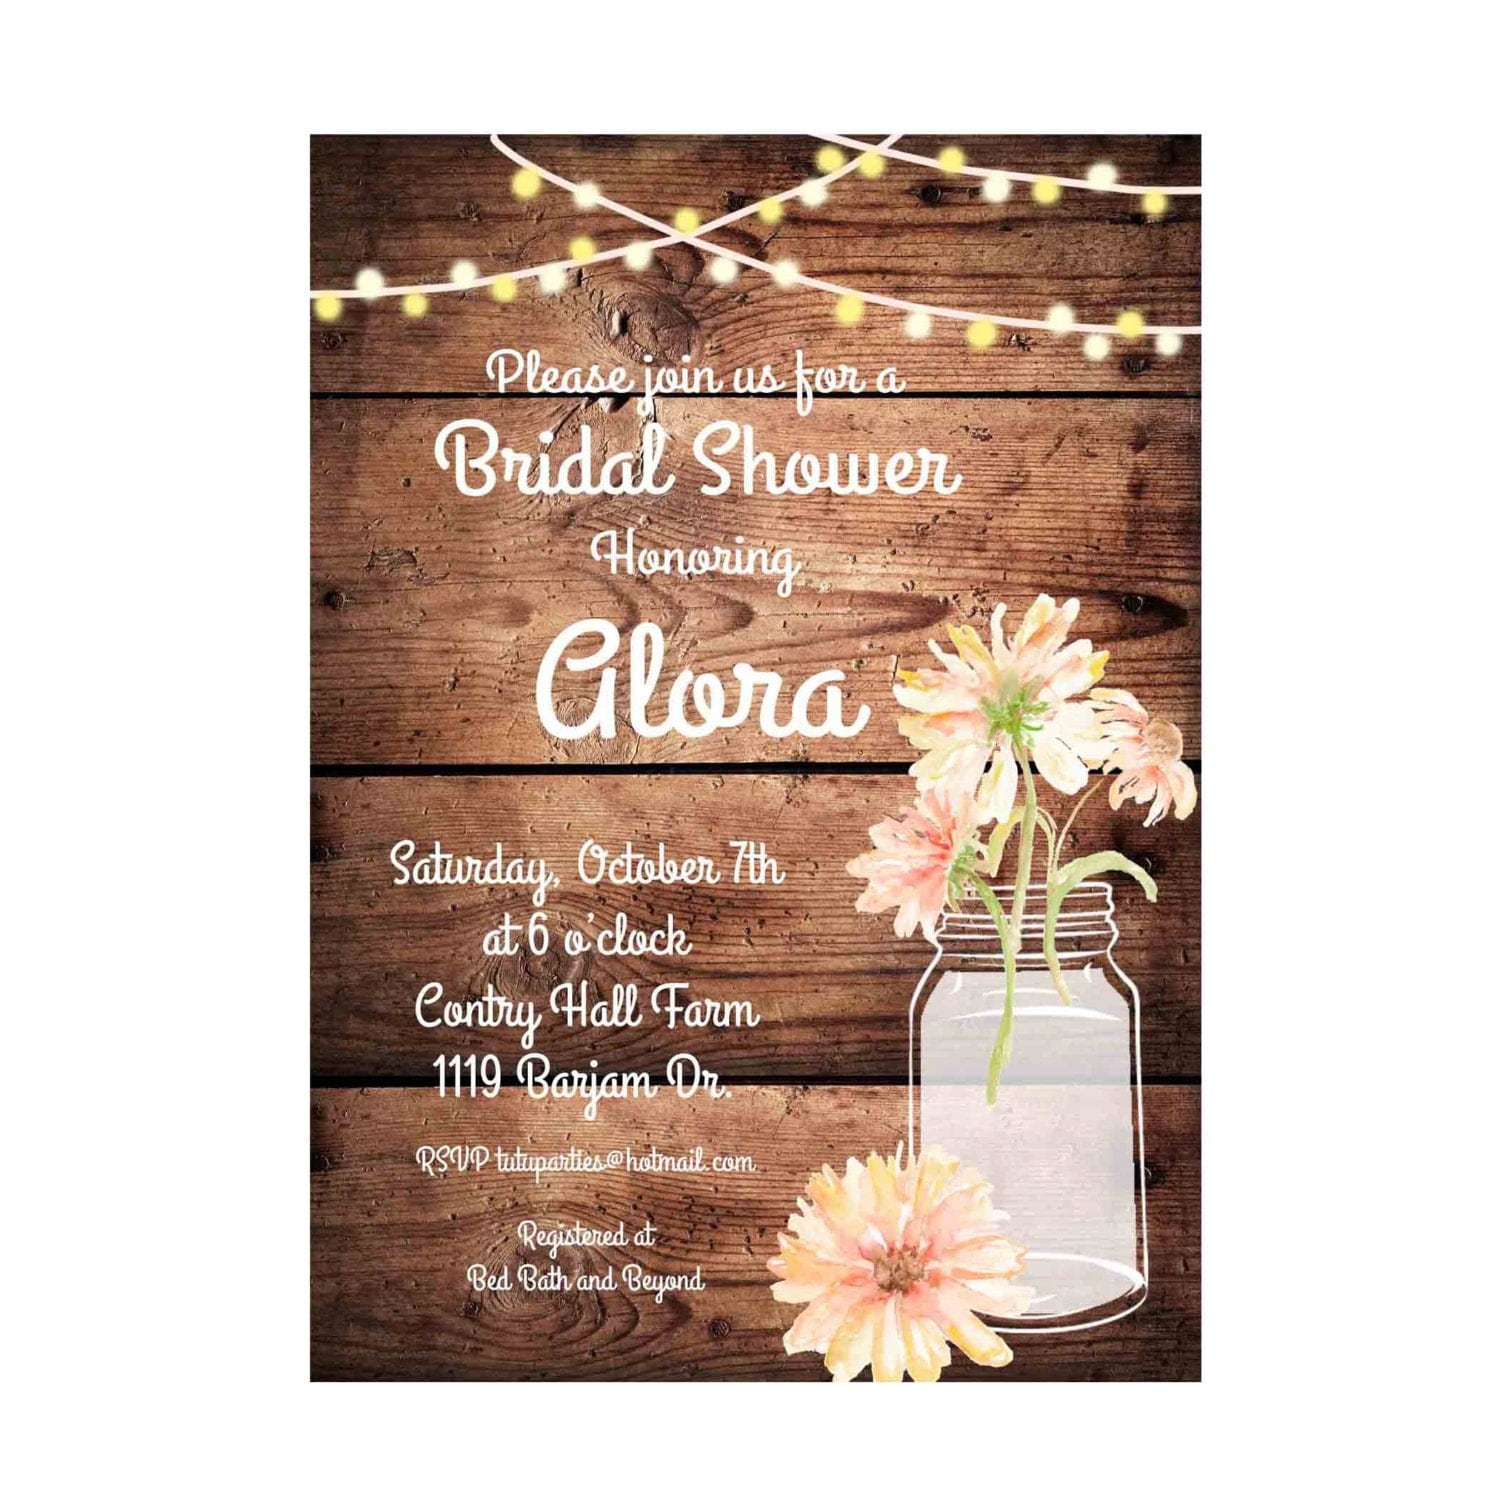 Rustic Daisy Wedding Invitations: Rustic Bridal Shower Invitation Printable Daisies Birthday